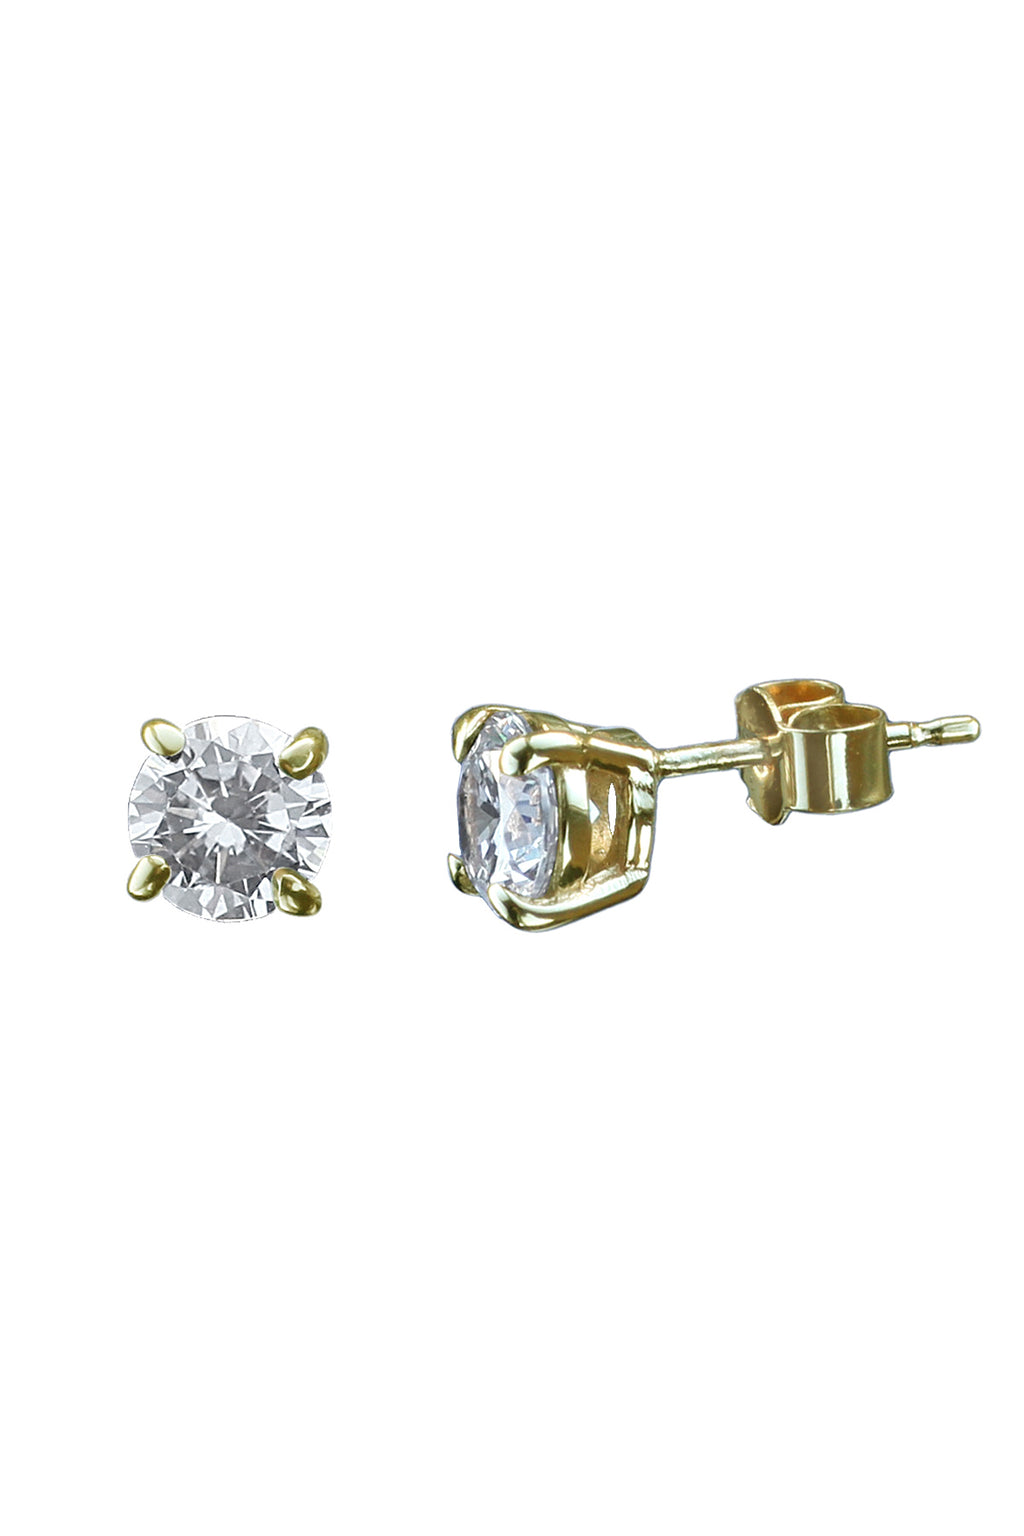 CZ Gold Large Stud Earrings